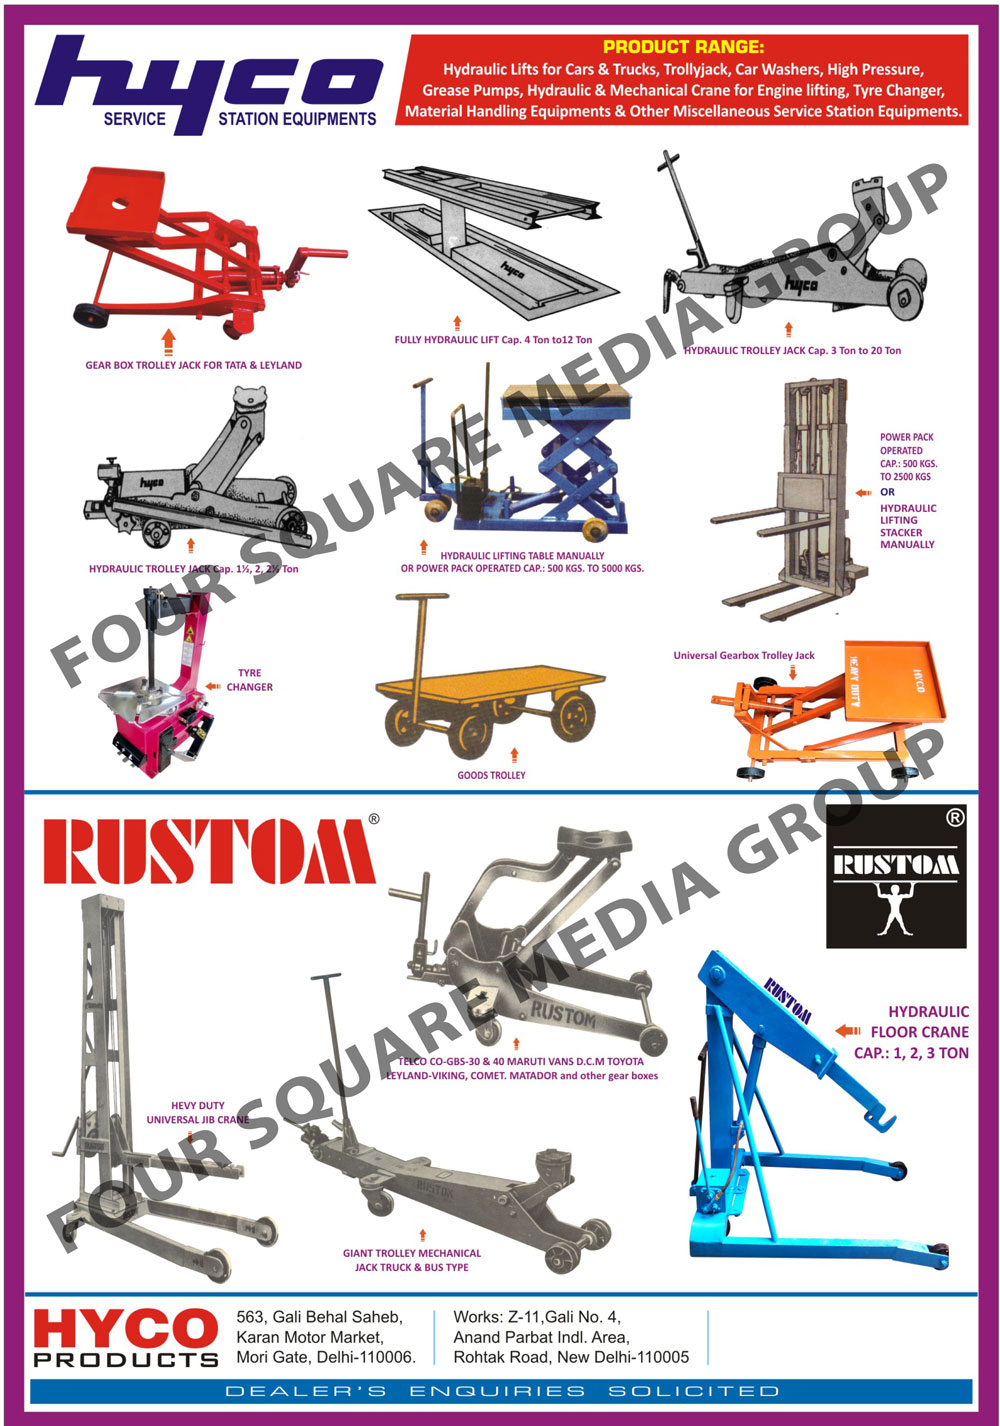 Car Hydraulic Lifts, Truck Hydraulic Lifts, Car Washers, Grease Pumps, Engine Lifting Hydraulic Cranes, Engine Lifting Mechanical Cranes, Air Compressors, Tyre Changers, Service Station Material Handling Equipments, Miscellaneous Service Station Equipments, Miscellaneous Garage Equipments, Hydraulic Trolley Jacks, Gear Box Trolley Jacks, Hydraulic Lifting Tables, Universal Jib Cranes, Tyre Changers, Hydraulic Floor Cranes, Goods Trolley, Hydraulic Pallet Trucks, Hydraulic Lifting Stacker, Fully Hydraulic Lifts, Automotive Jacks